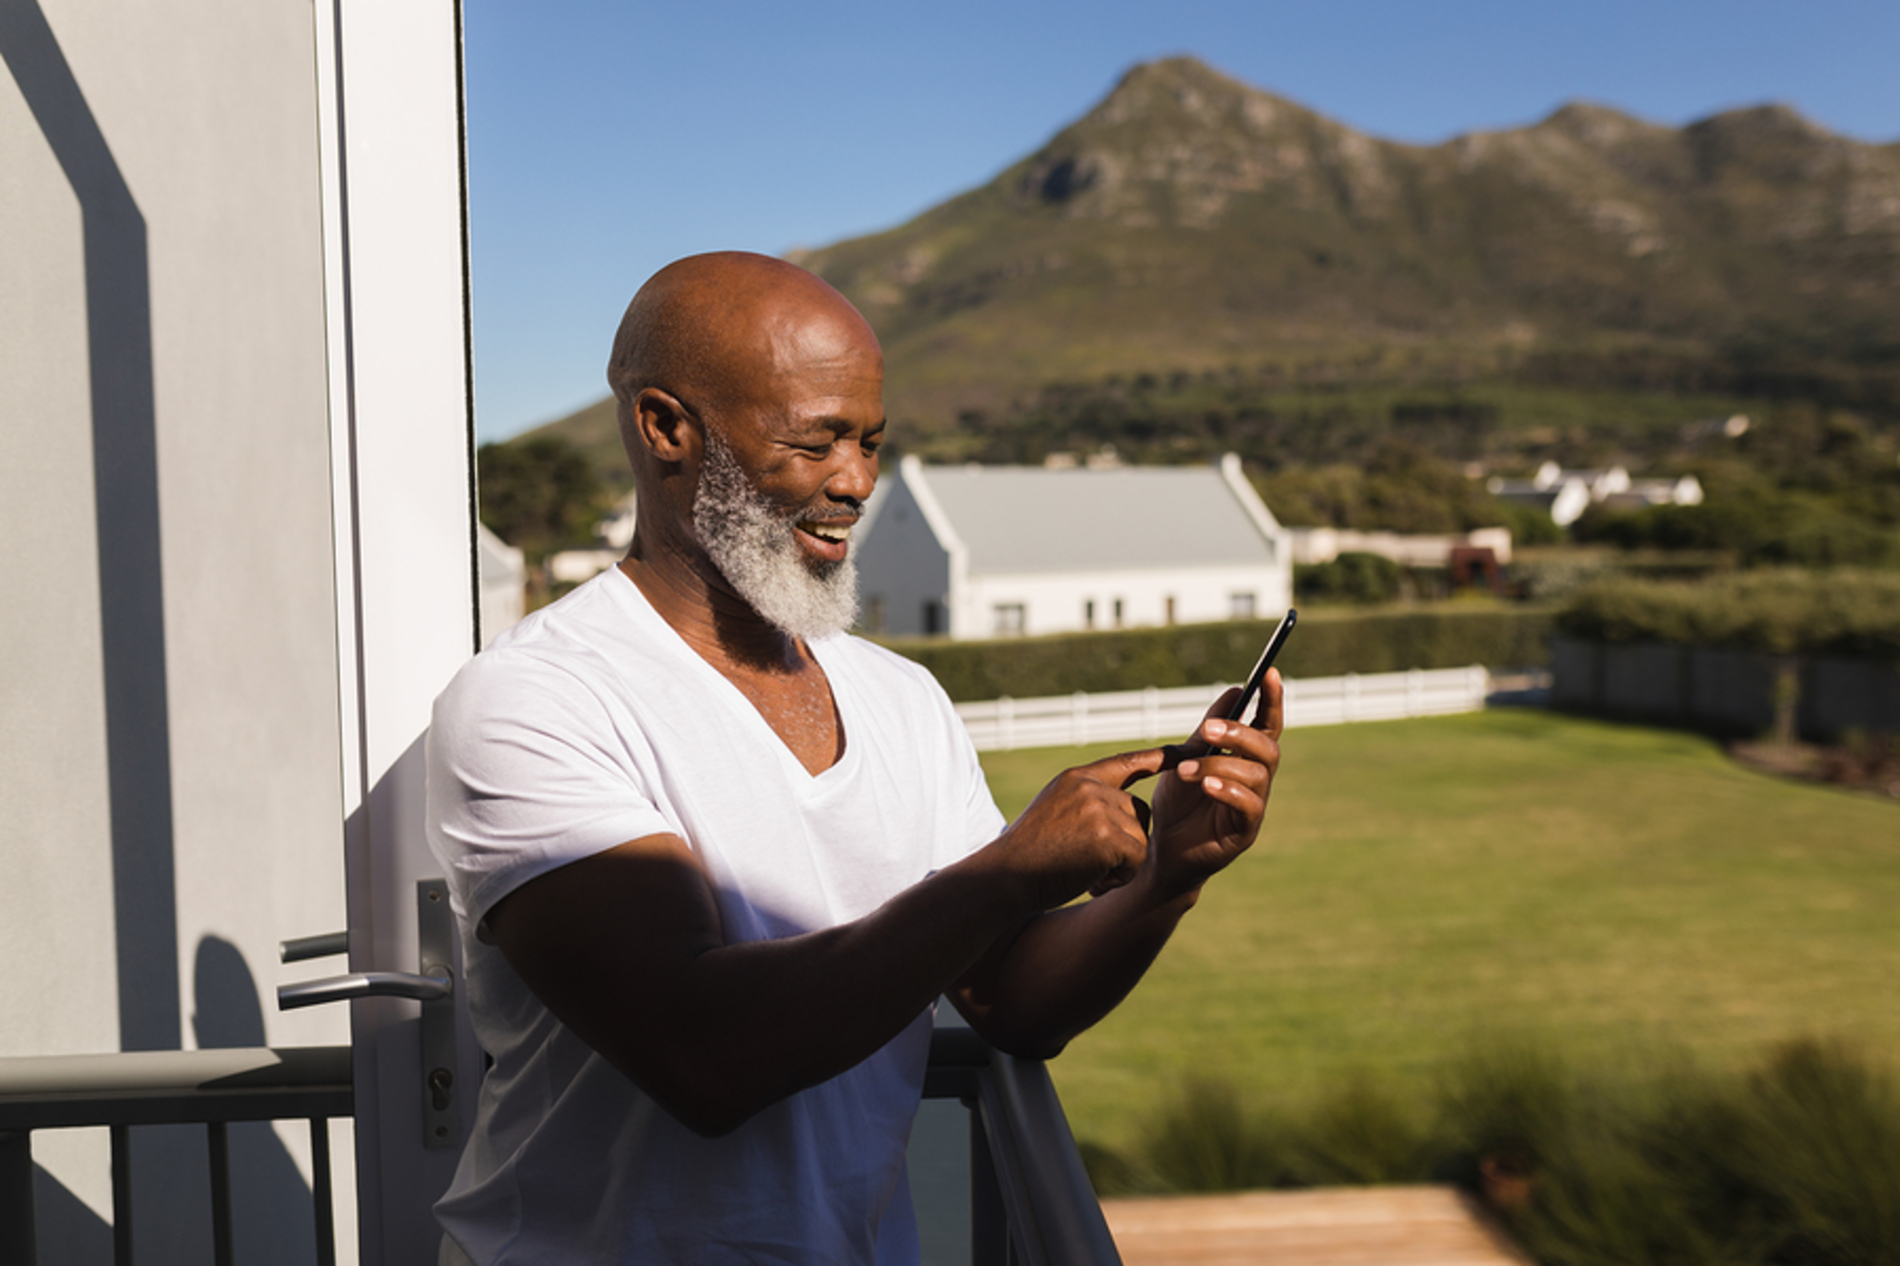 Man looking at a mobile phone while on a deck.